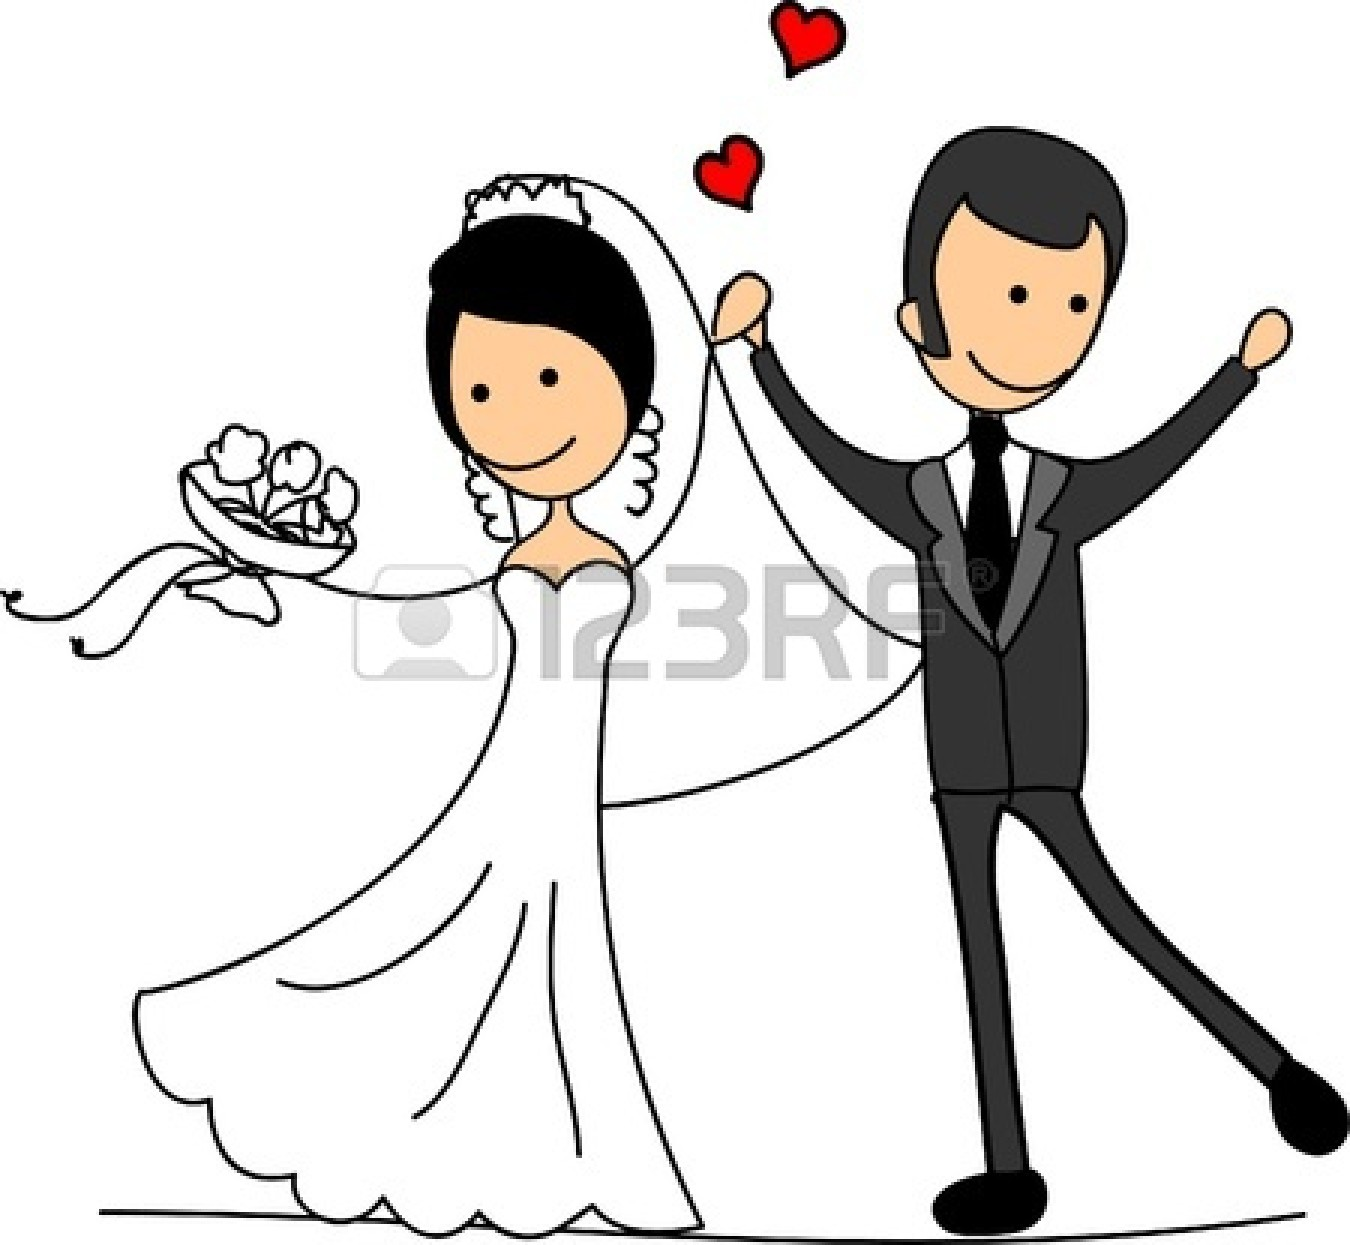 Clip Art Bride And Groom Clipart bride and groom clipart kid black white panda free images